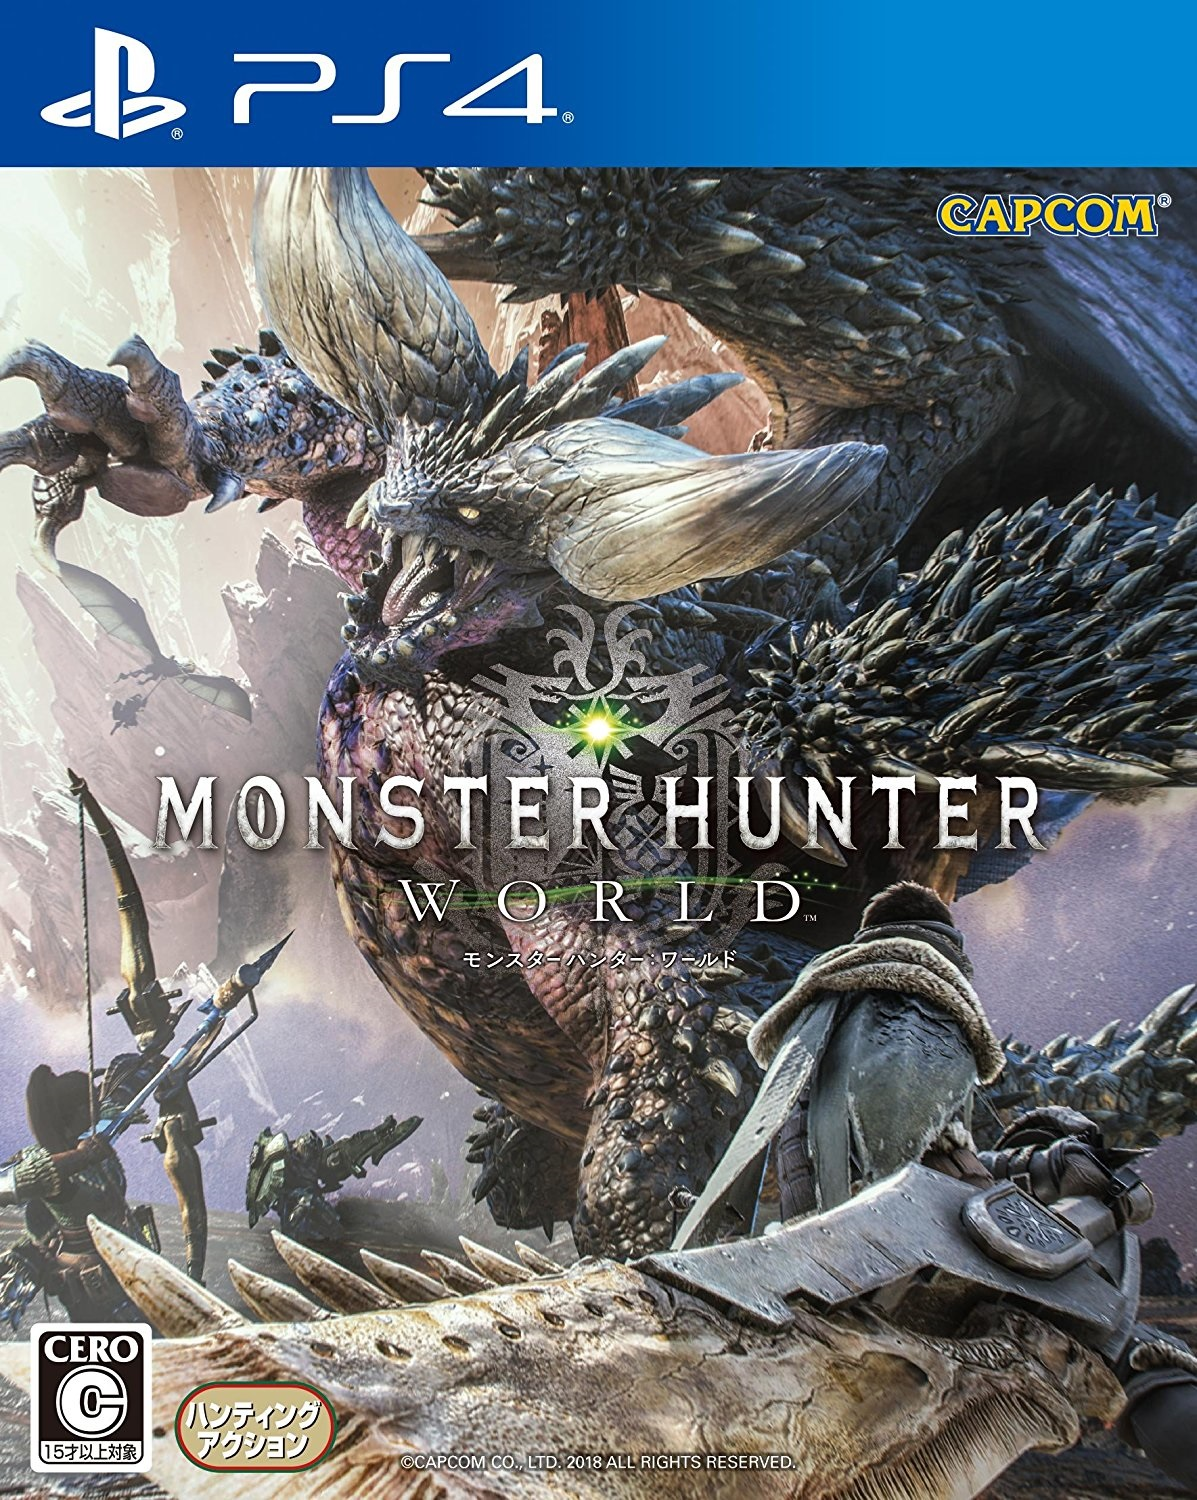 MONSTER HUNTER: WORLD (通) 高価買取中